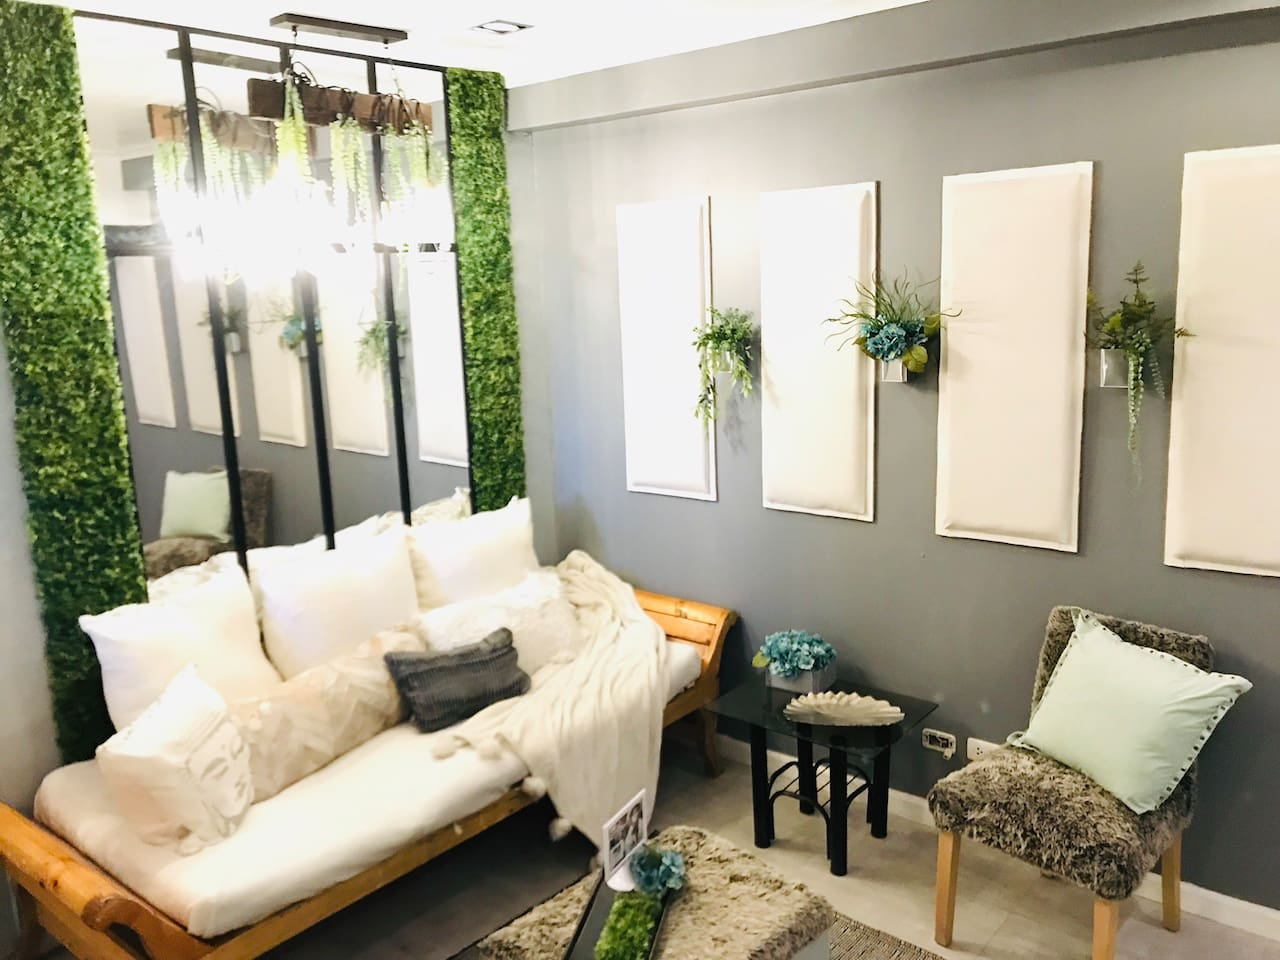 White padded panels to serve as noise reduction are custom made with floor to ceiling mirror to reflect a window with lush permanent botanical greens. Sleigh-day-bed with accent pillows and chair blanket with blue hydrangeas to accent the room.